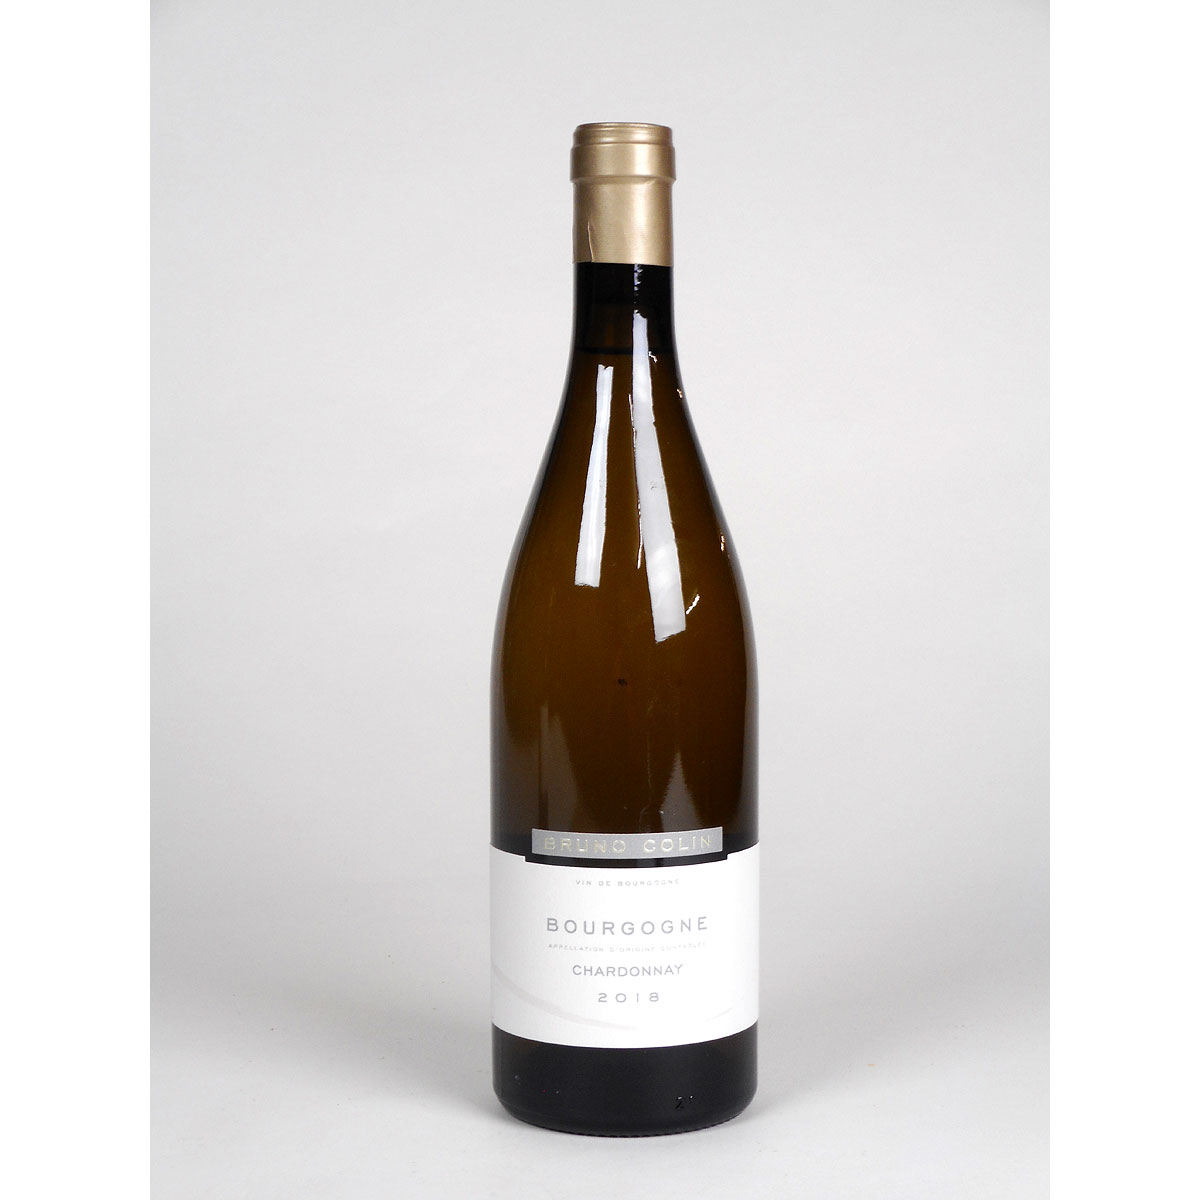 Bourgogne Chardonnay: Domaine Bruno Colin 2018 - Bottle